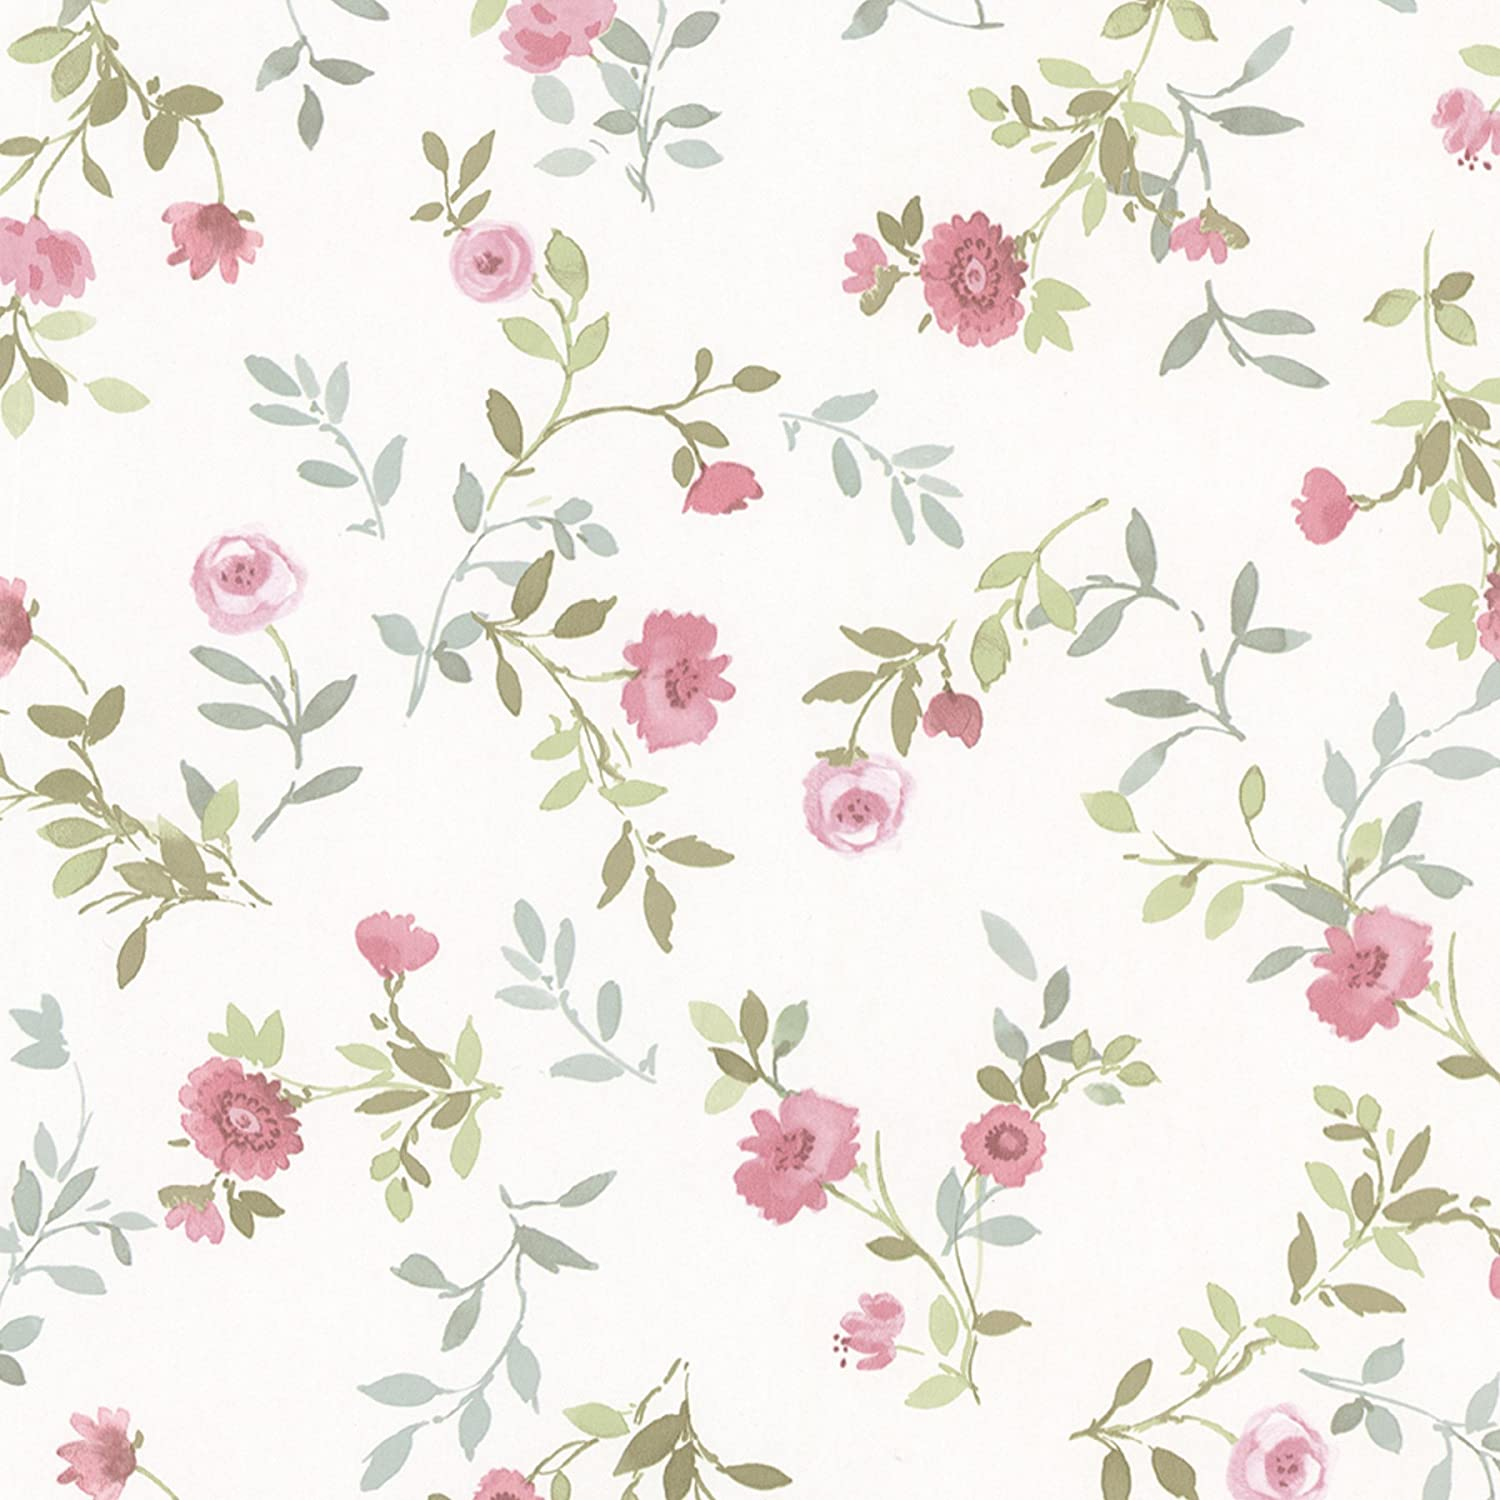 Brewster 487 68882 Sophie Floral Toss Wallpaper Pink Amazon Com